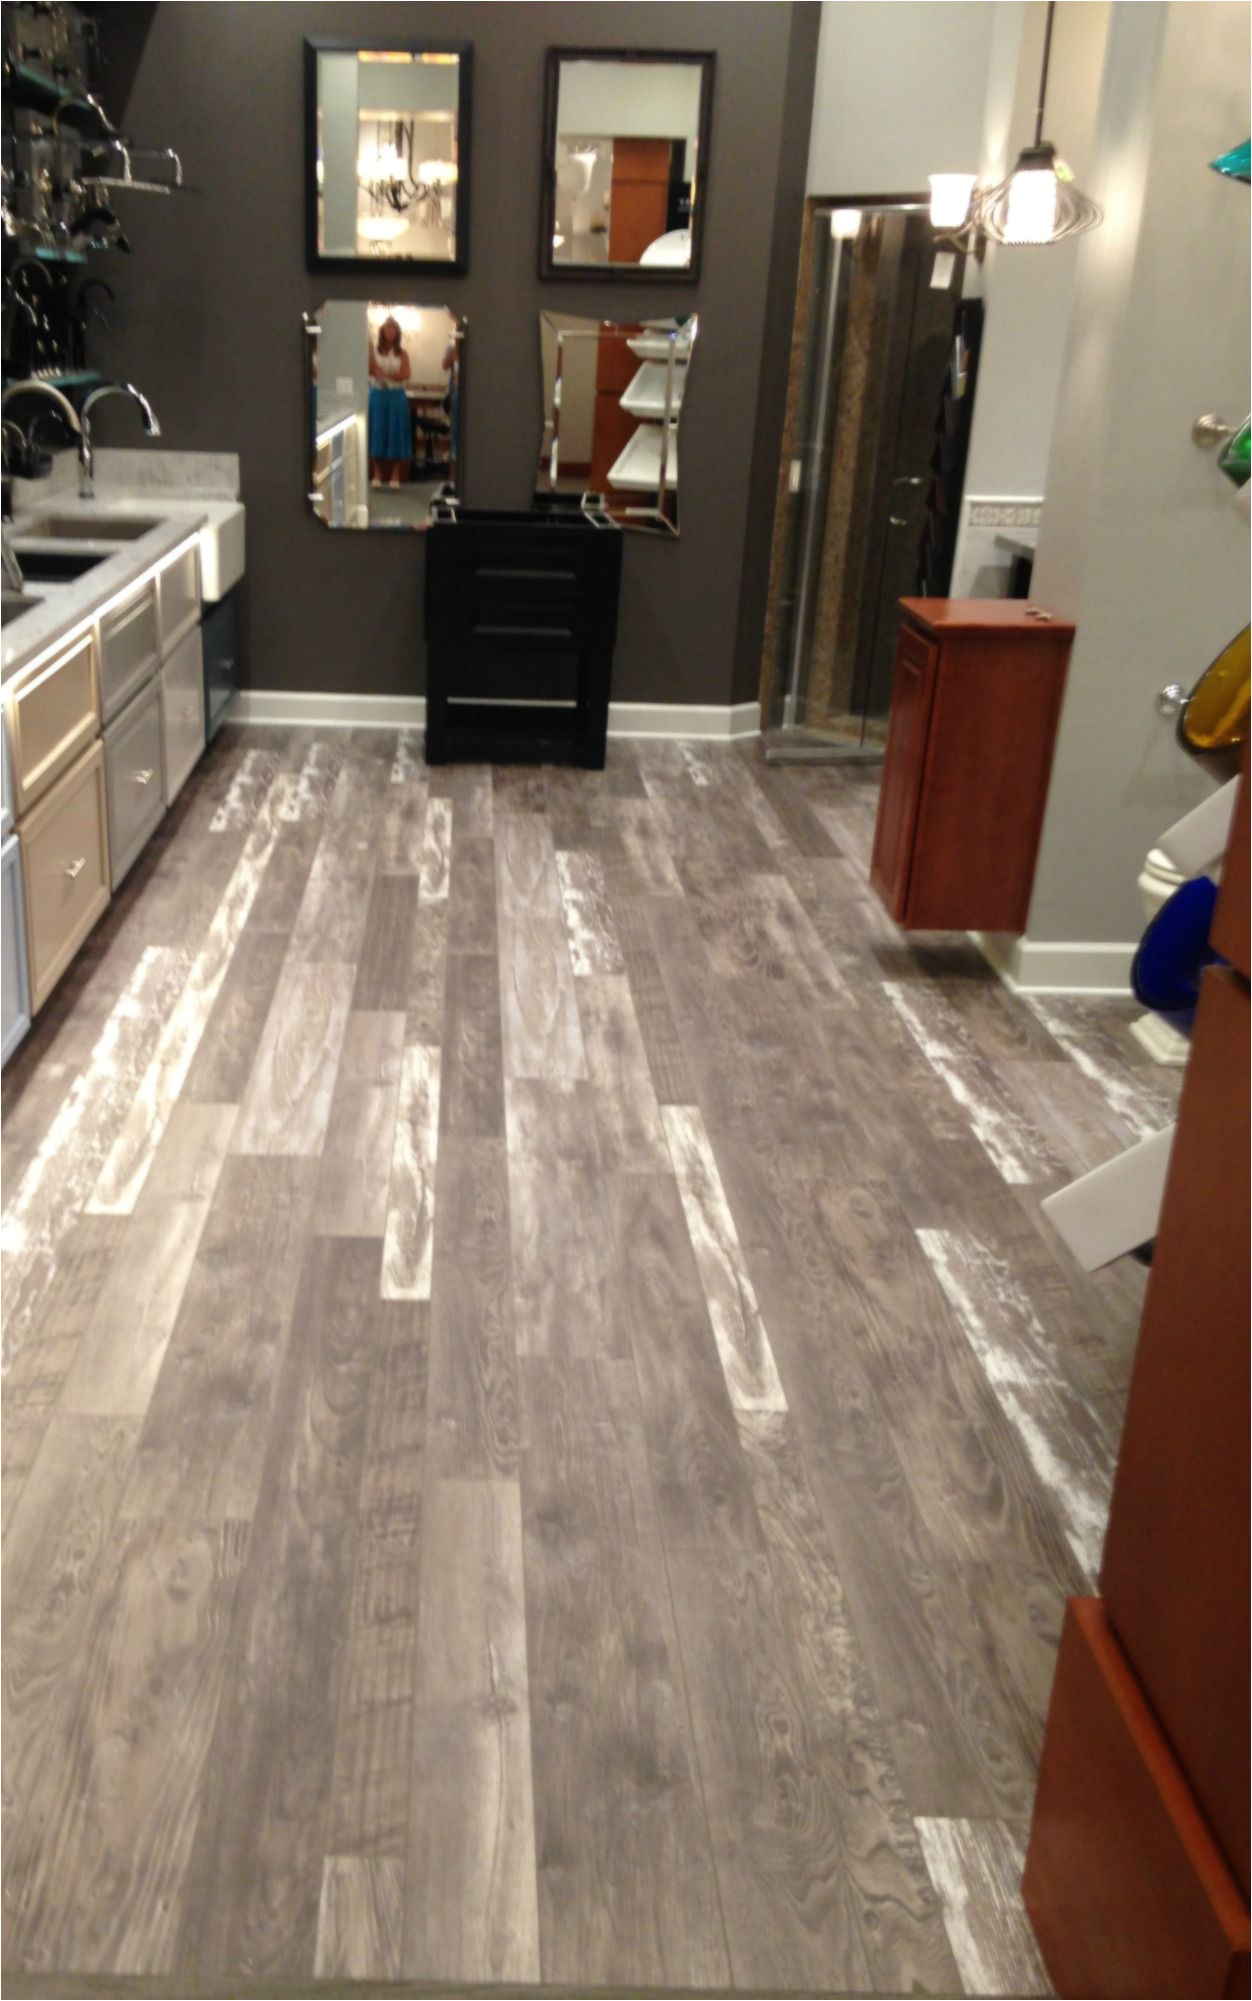 Premier Glueless Laminate Flooring Arcadian Oak Oh My This Beautiful Architectural Remnants Laminate Floor From